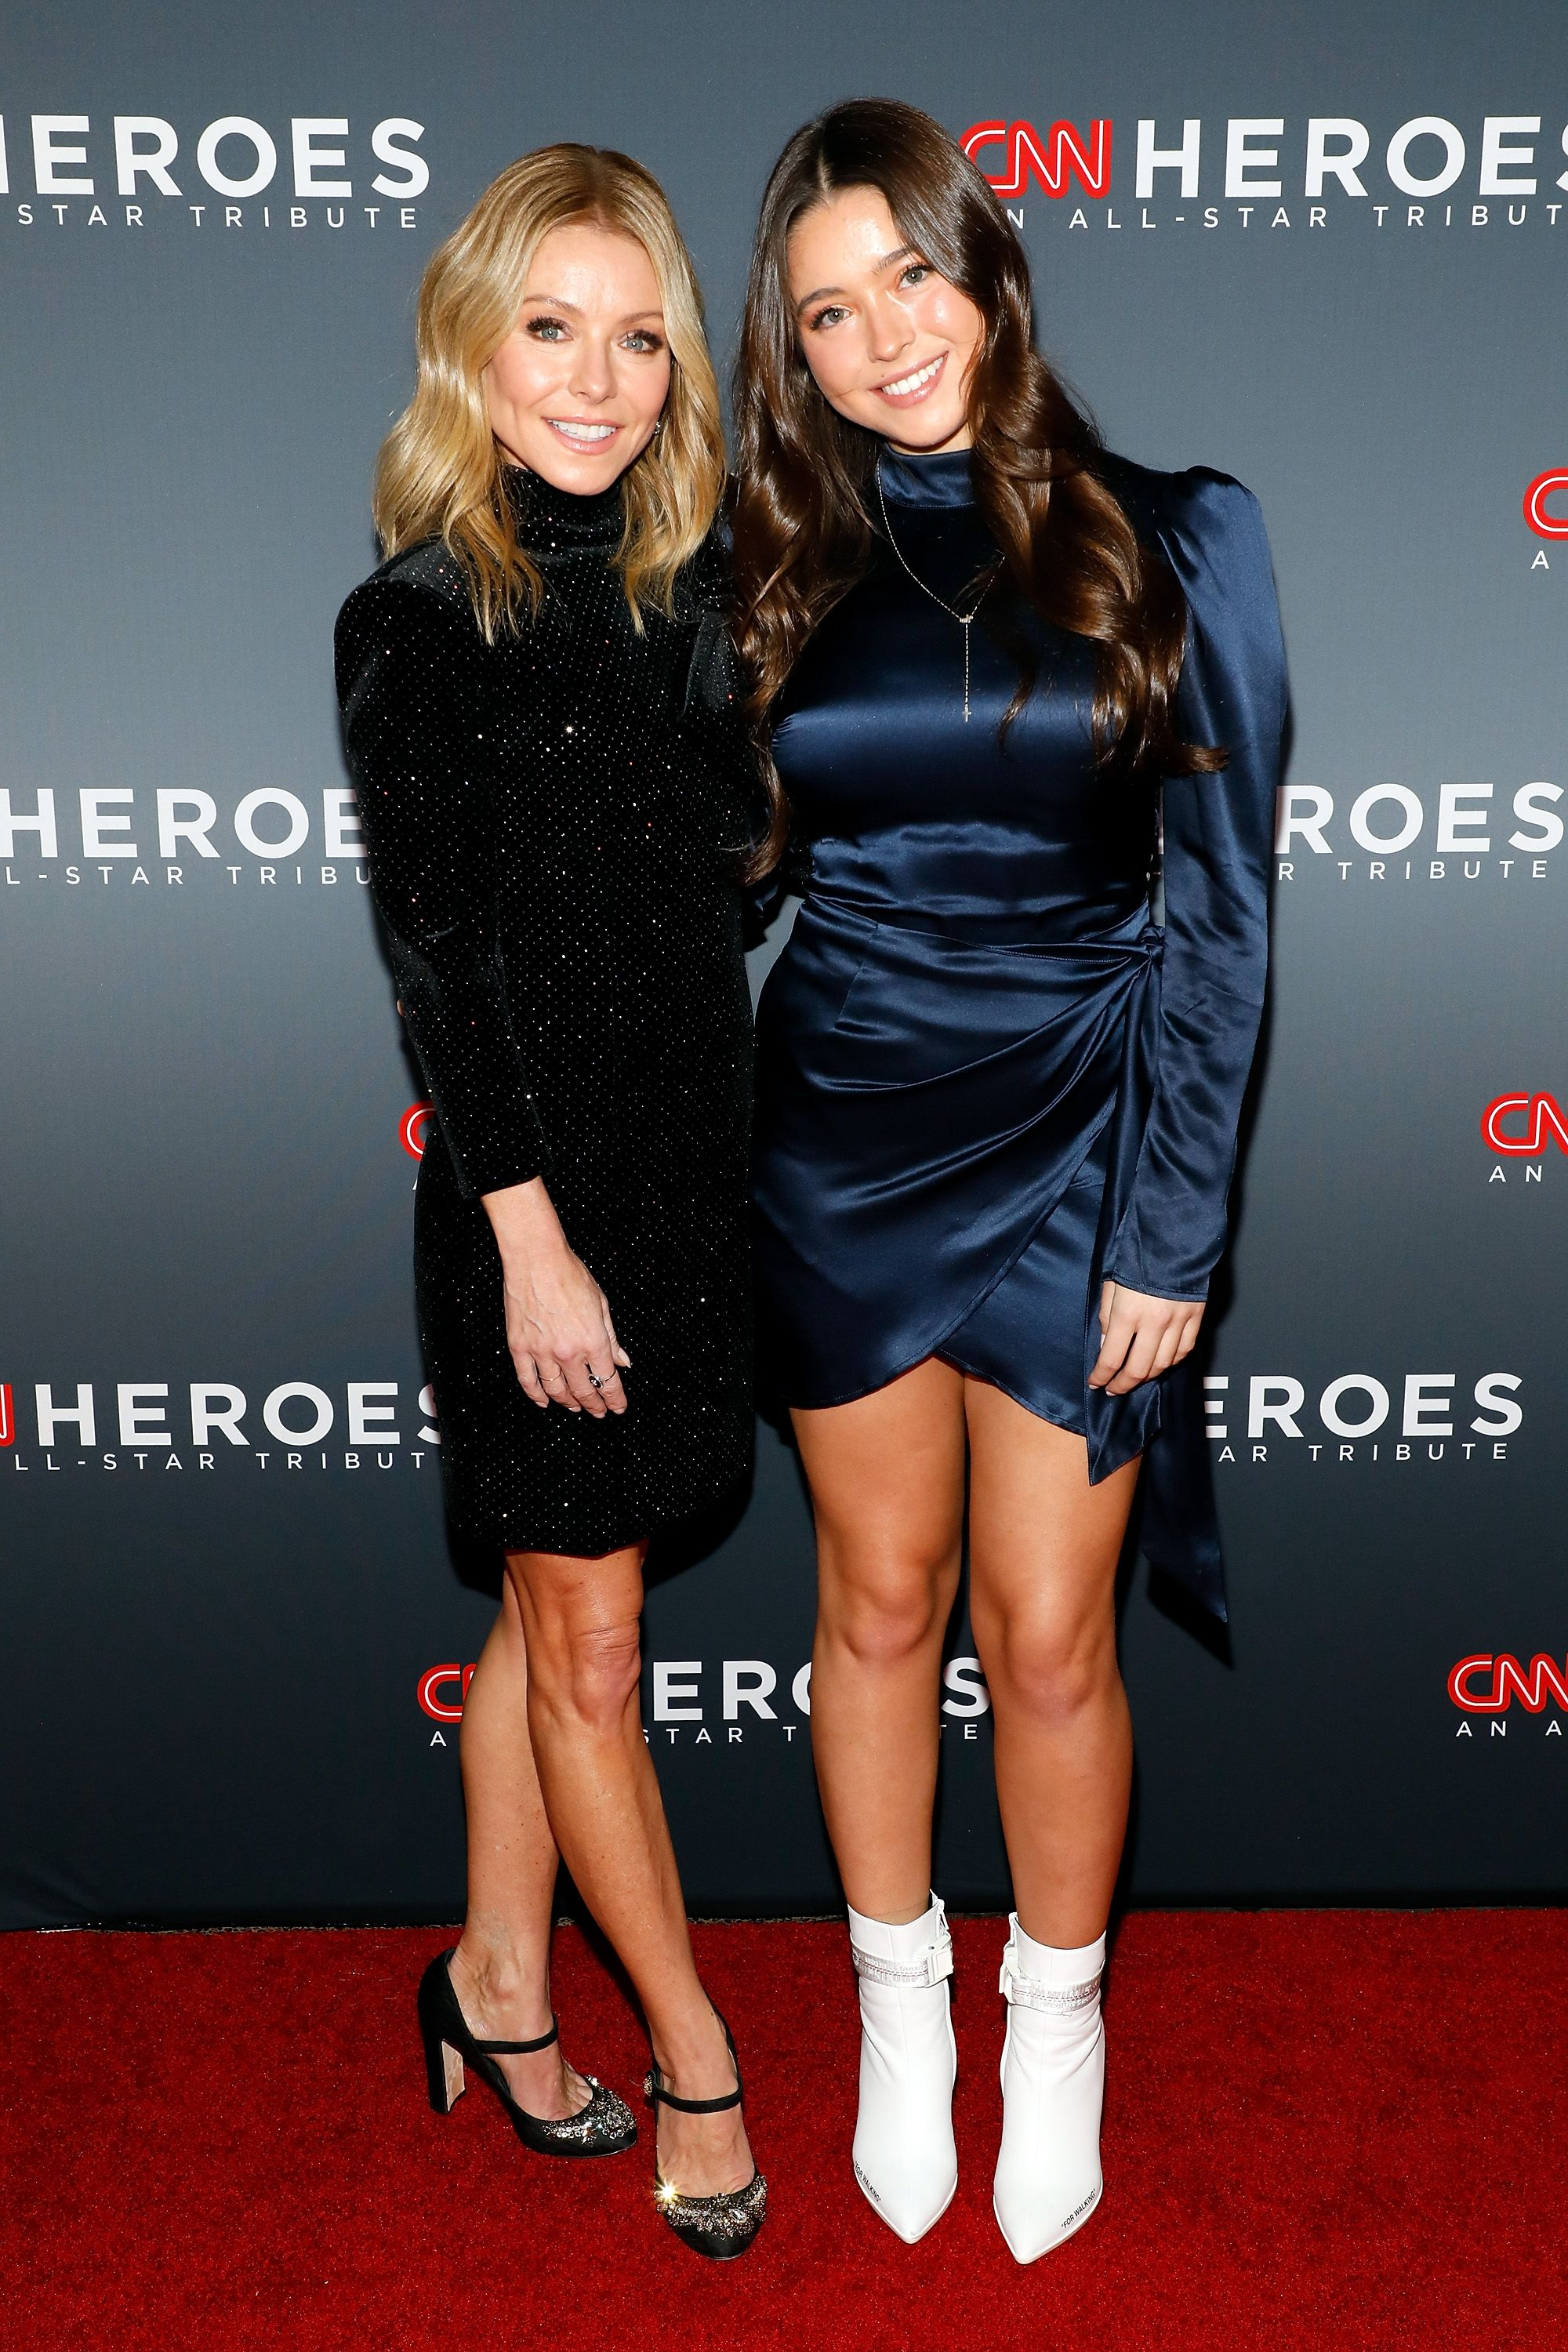 Kelly Ripa and her daugher Lola Consuelos at the 13th Annual CNN Heroes Gala on December 8, 2019 | Getty Images